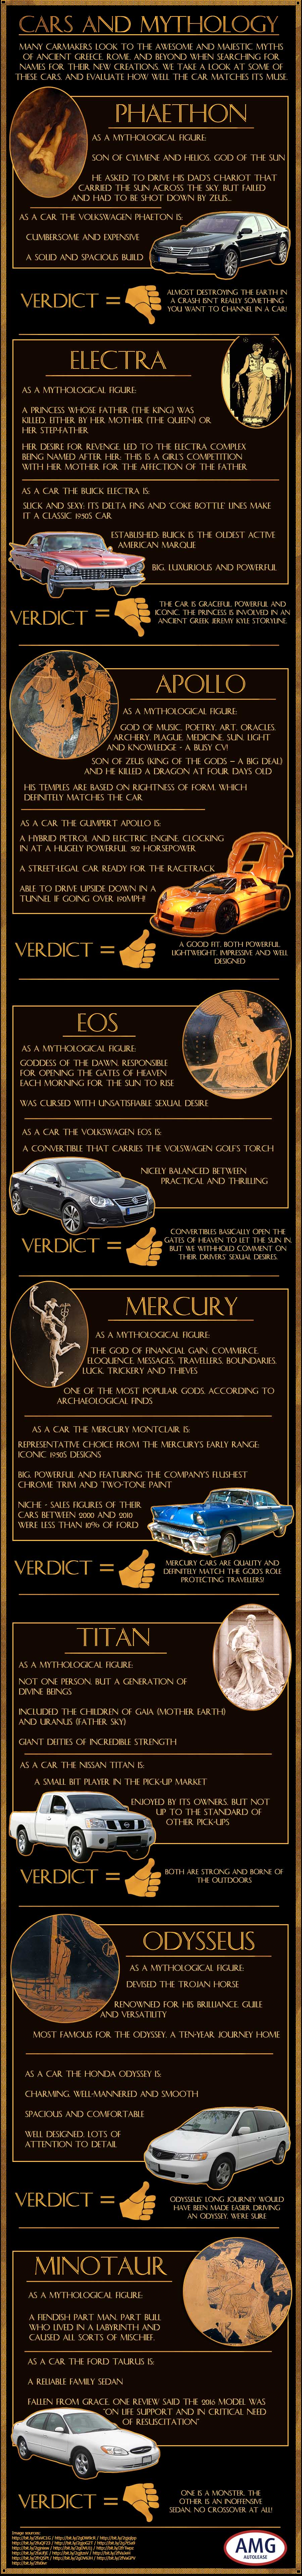 Cars and Mythology: What's in a Name?